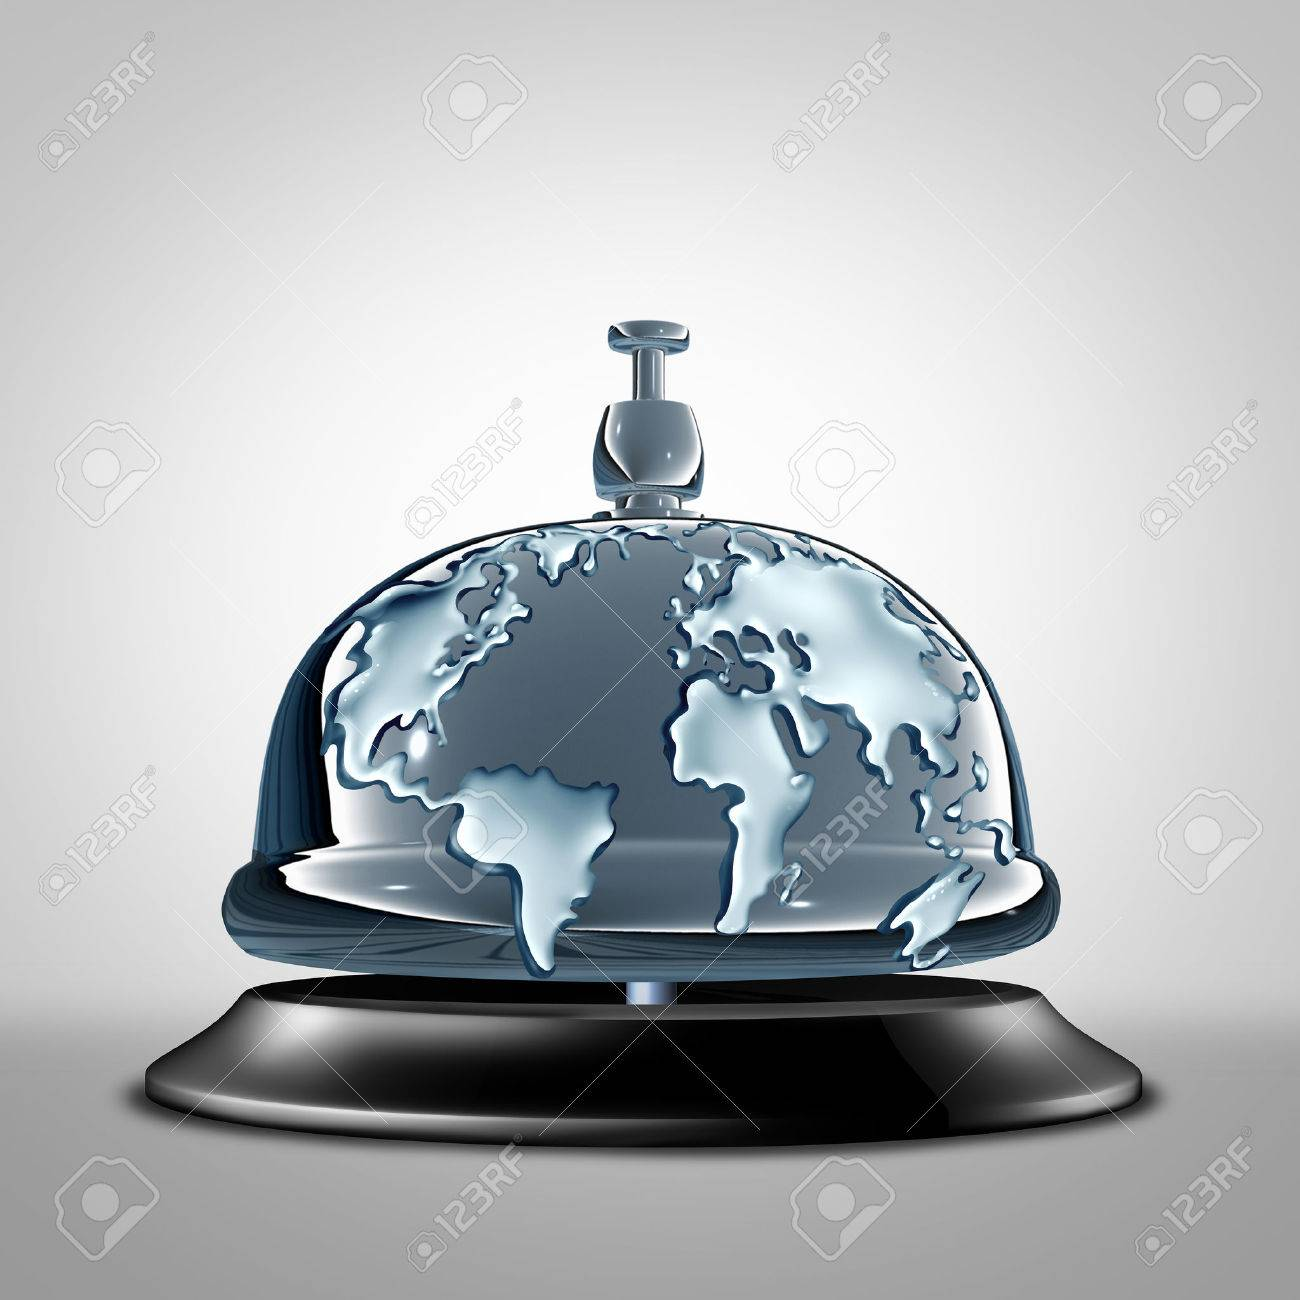 Global Service Symbol As A Front Desk Hotel Bell With The World Embosed In  The Silver